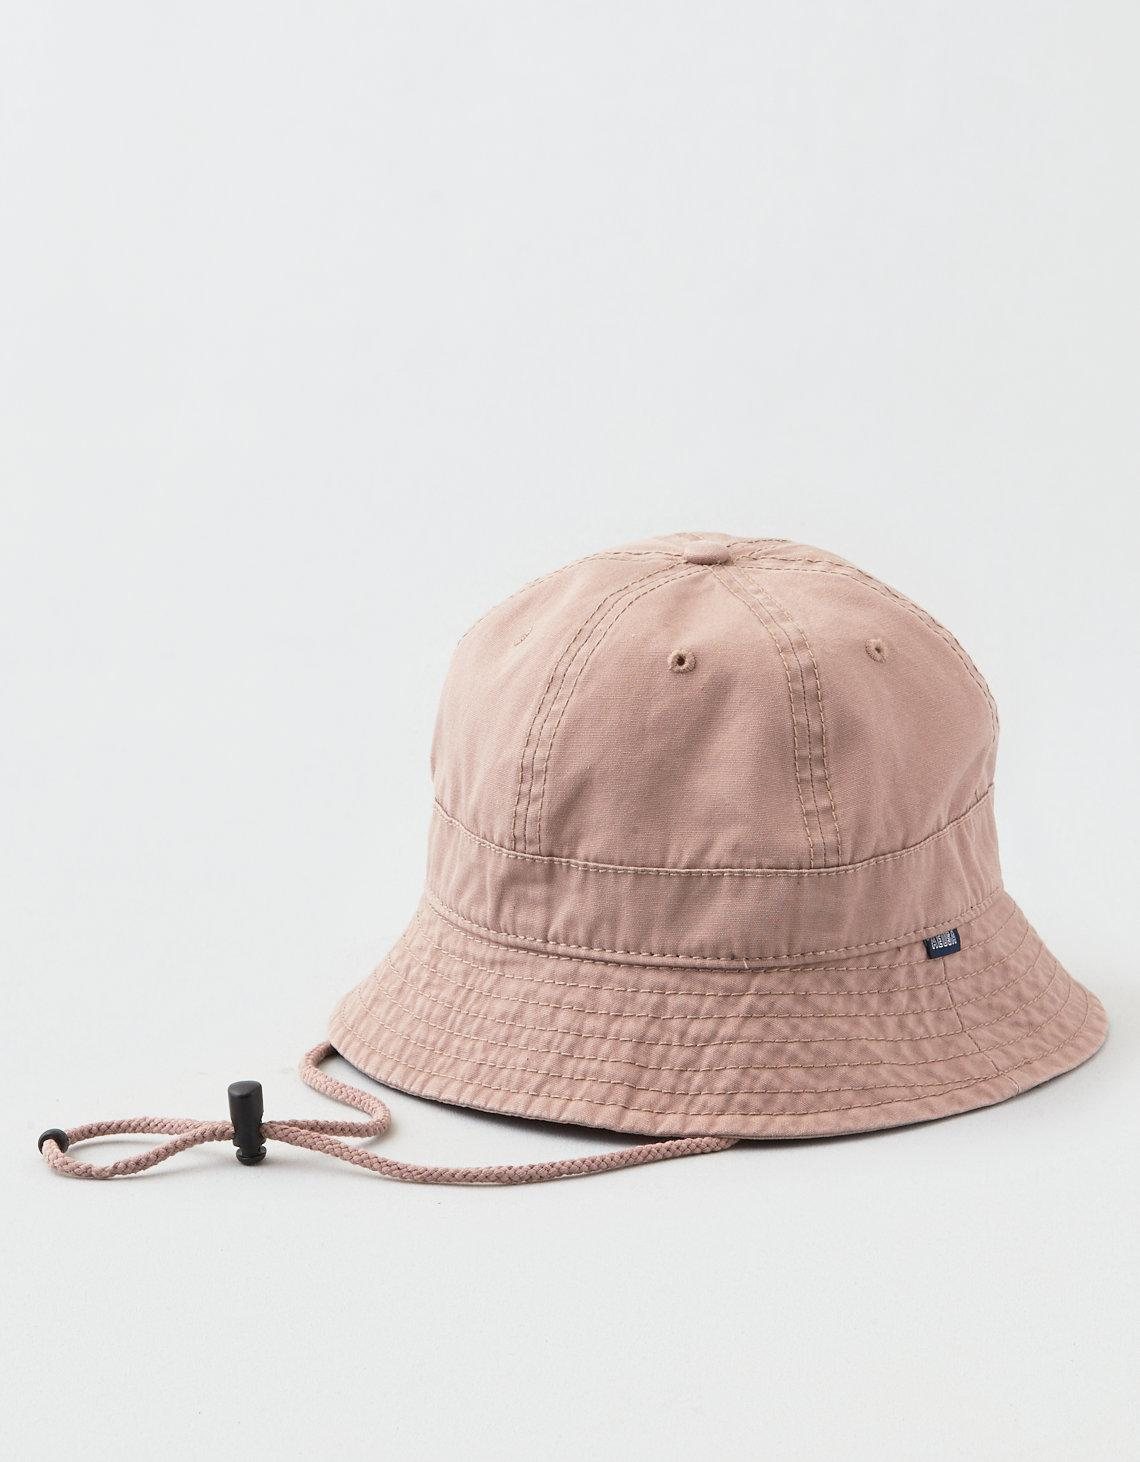 Lyst - American Eagle Ae Bucket Hat in Pink for Men ce5c2b87996